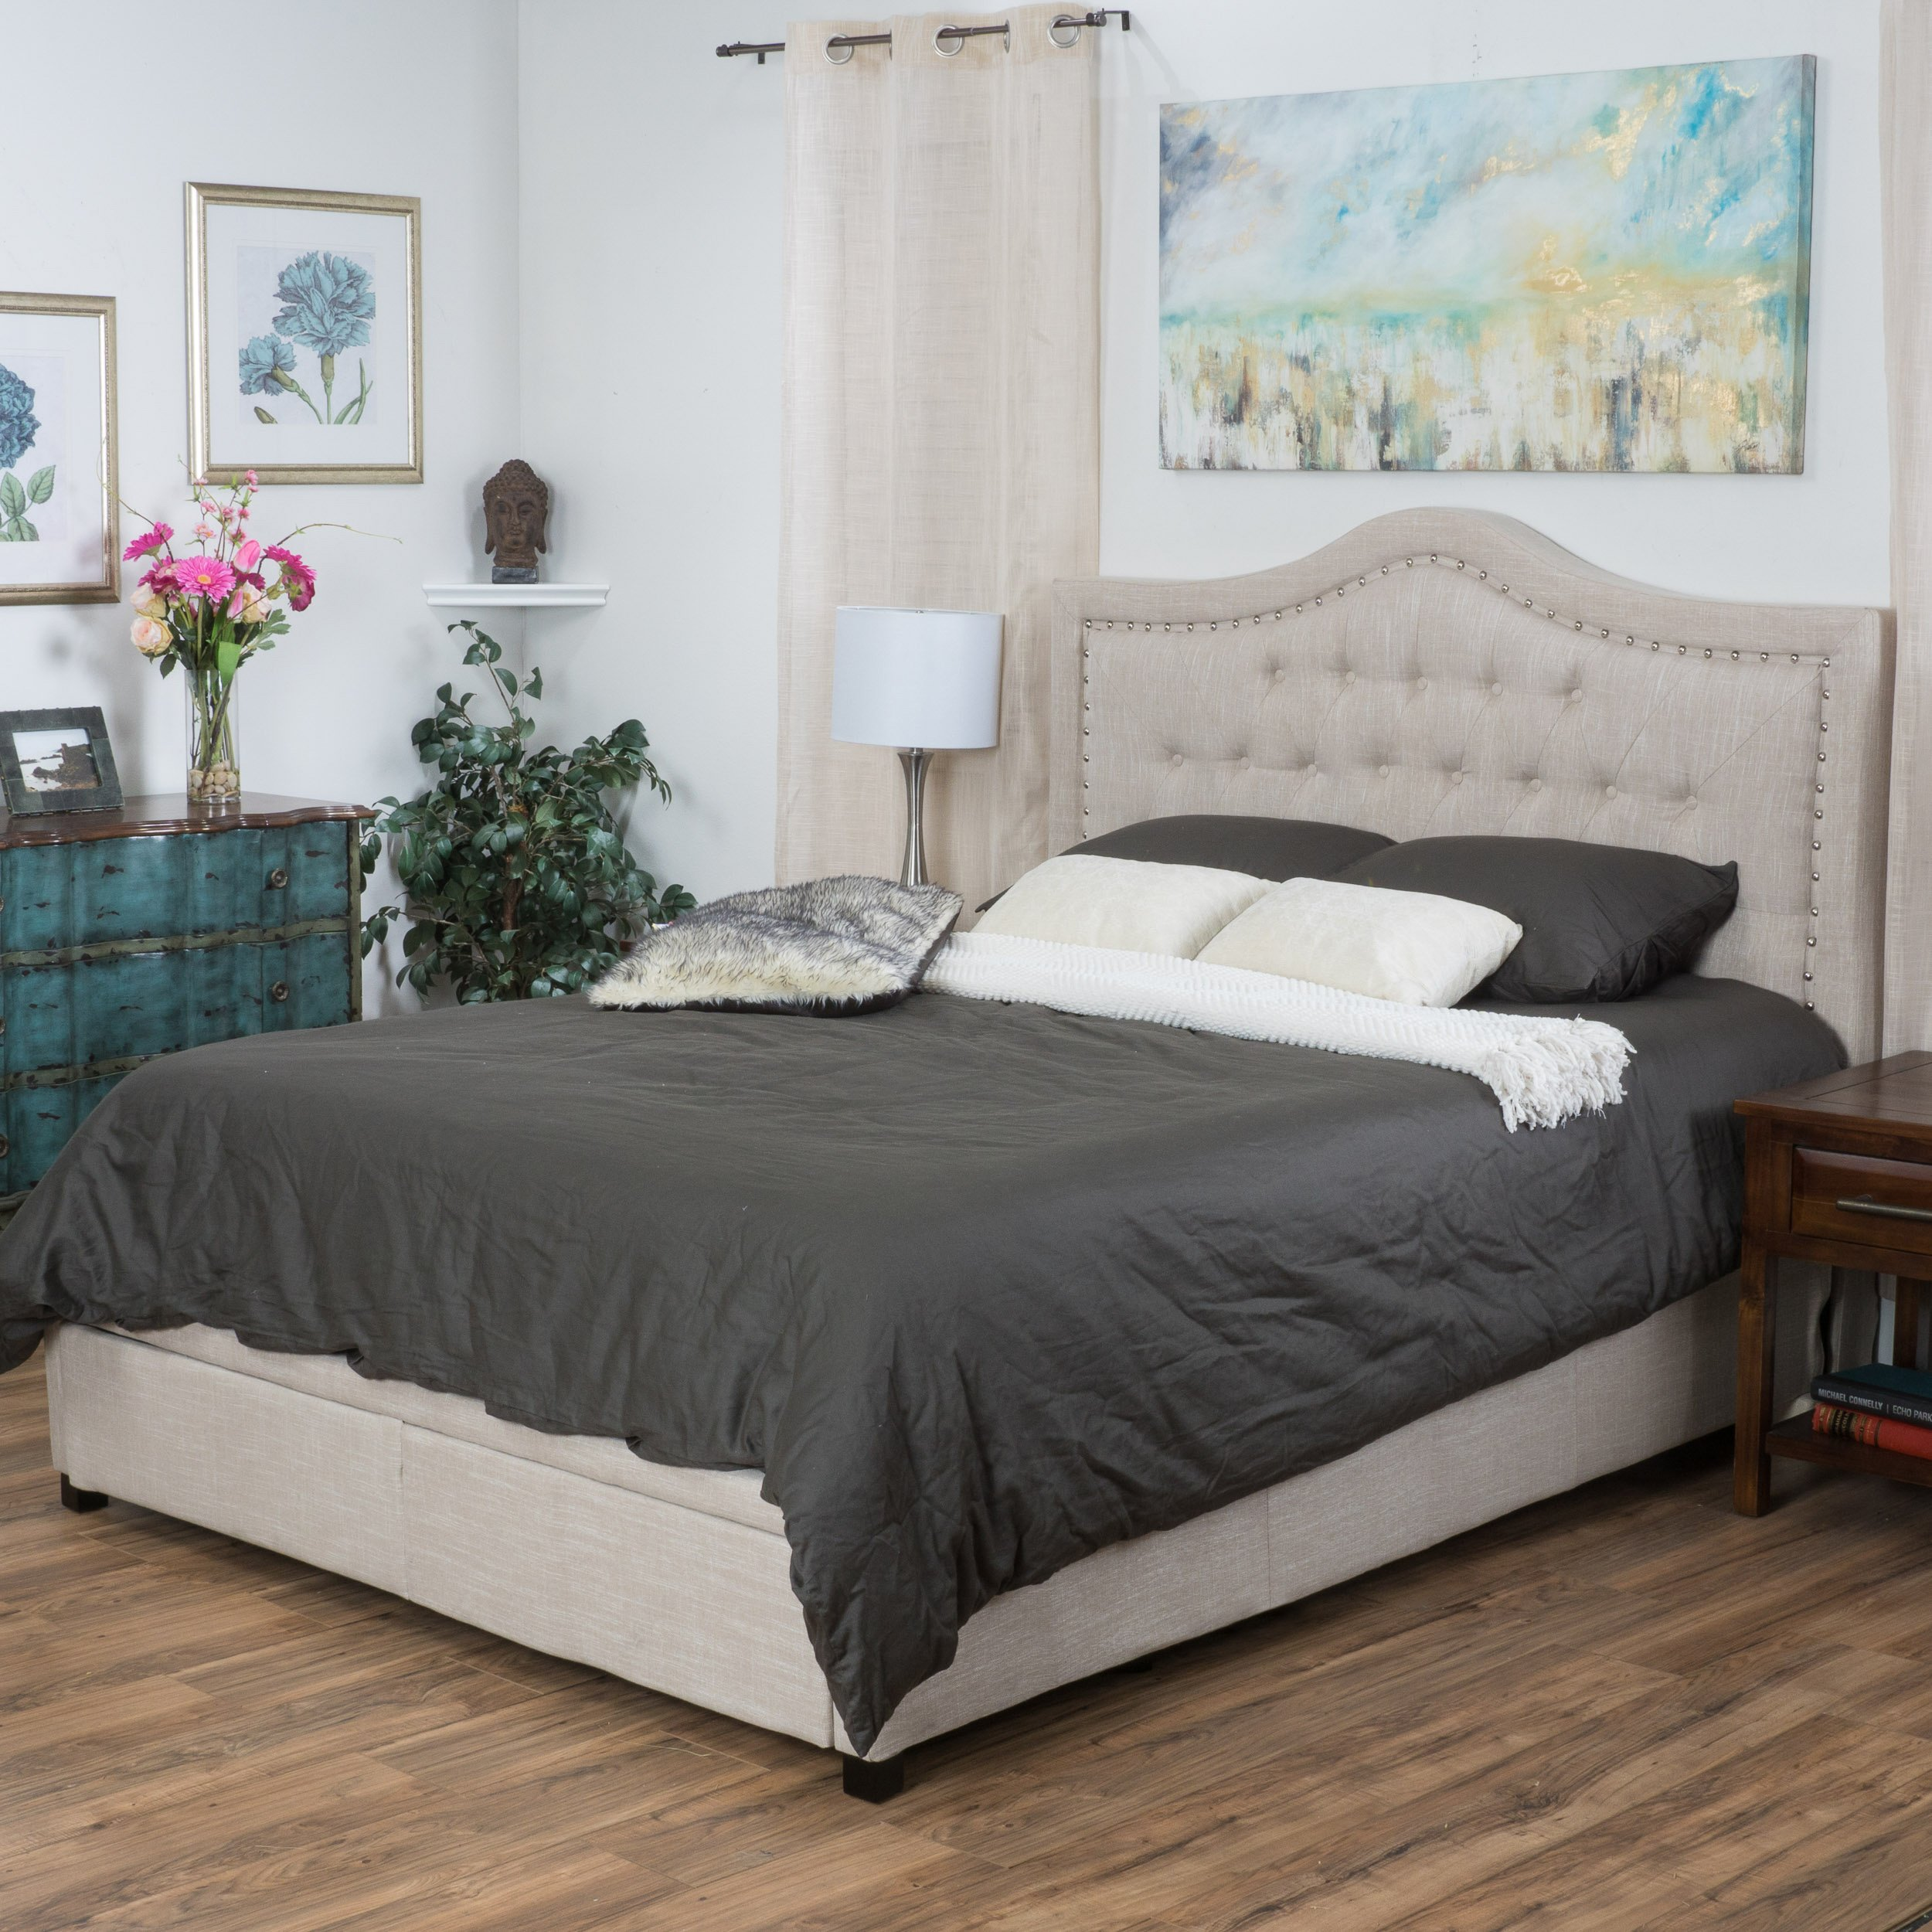 free cheap with black bed king delivery bedframe leather bedfames frame beds faux ireland anywhere berlin bedframes size in